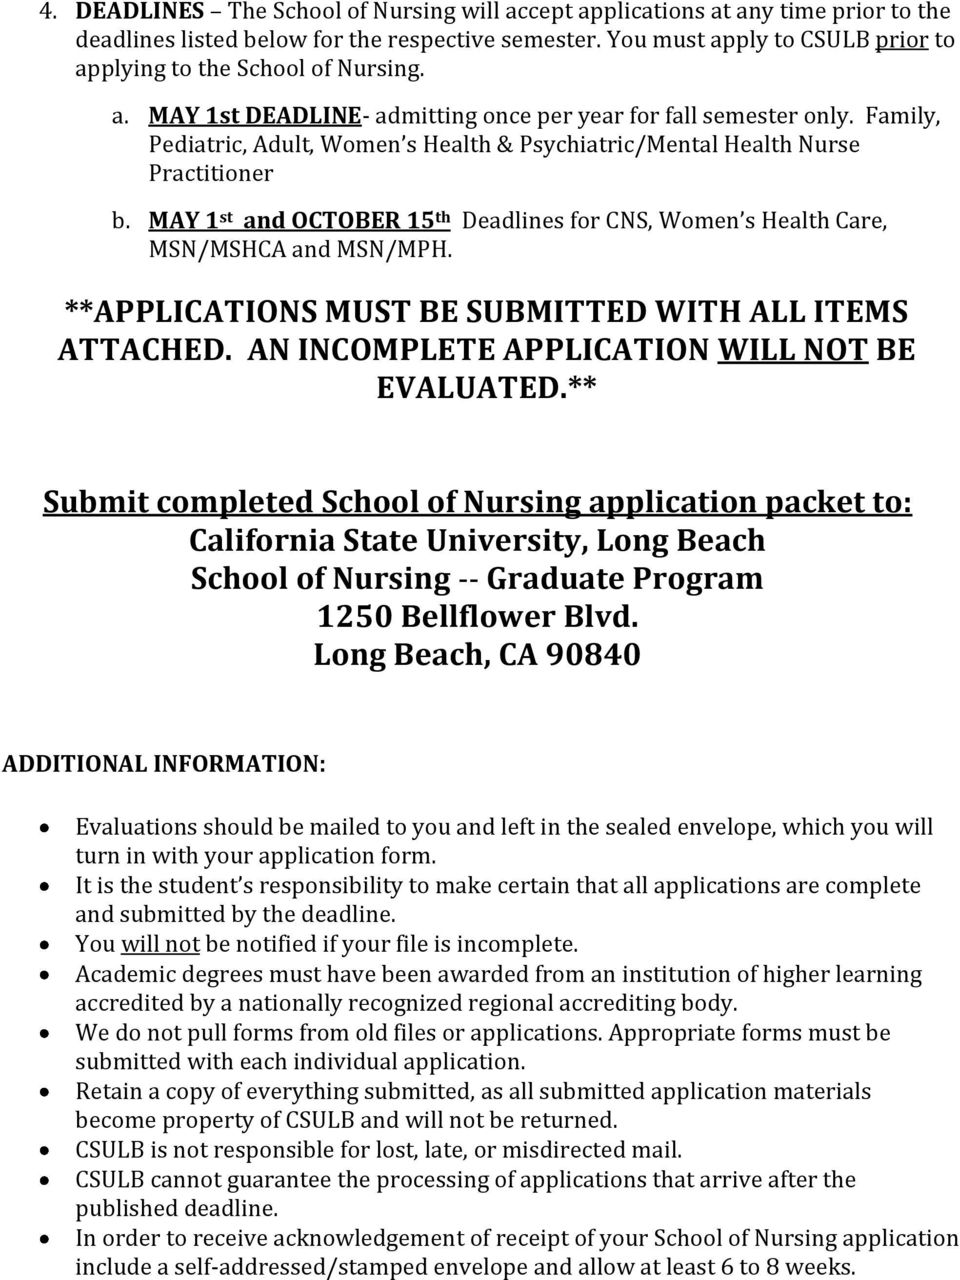 Family, Pediatric, Adult, Women s Health & Psychiatric/Mental Health Nurse Practitioner b. MAY 1 st and OCTOBER 15 th Deadlines for CNS, Women s Health Care, MSN/MSHCA and MSN/MPH.